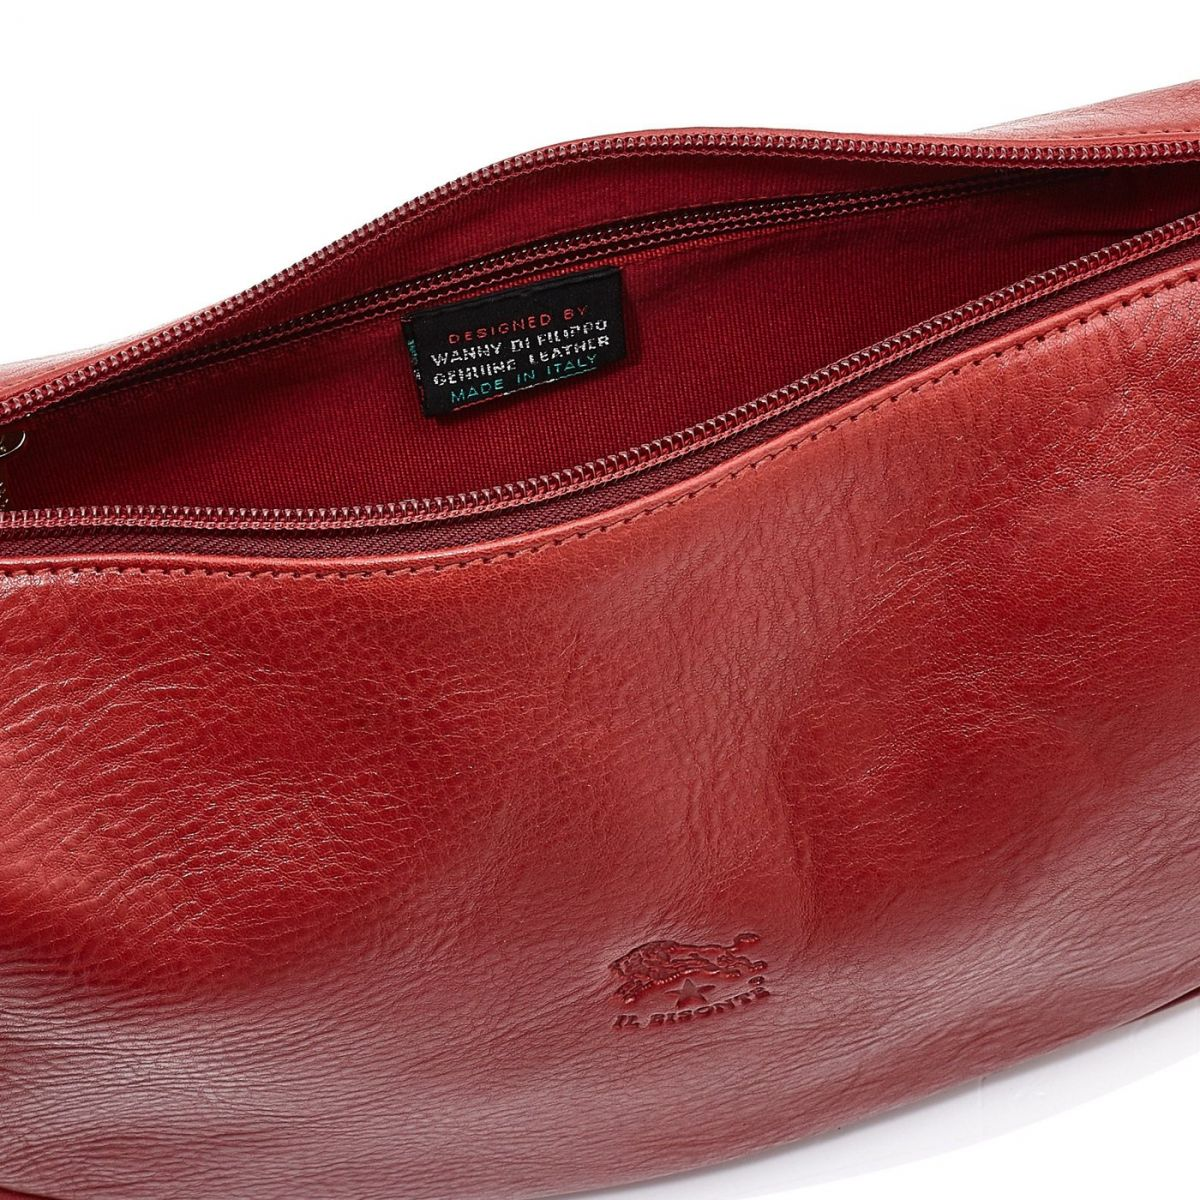 Women's Crossbody Bag in Cowhide Double Leather BCR021 color Red | Details